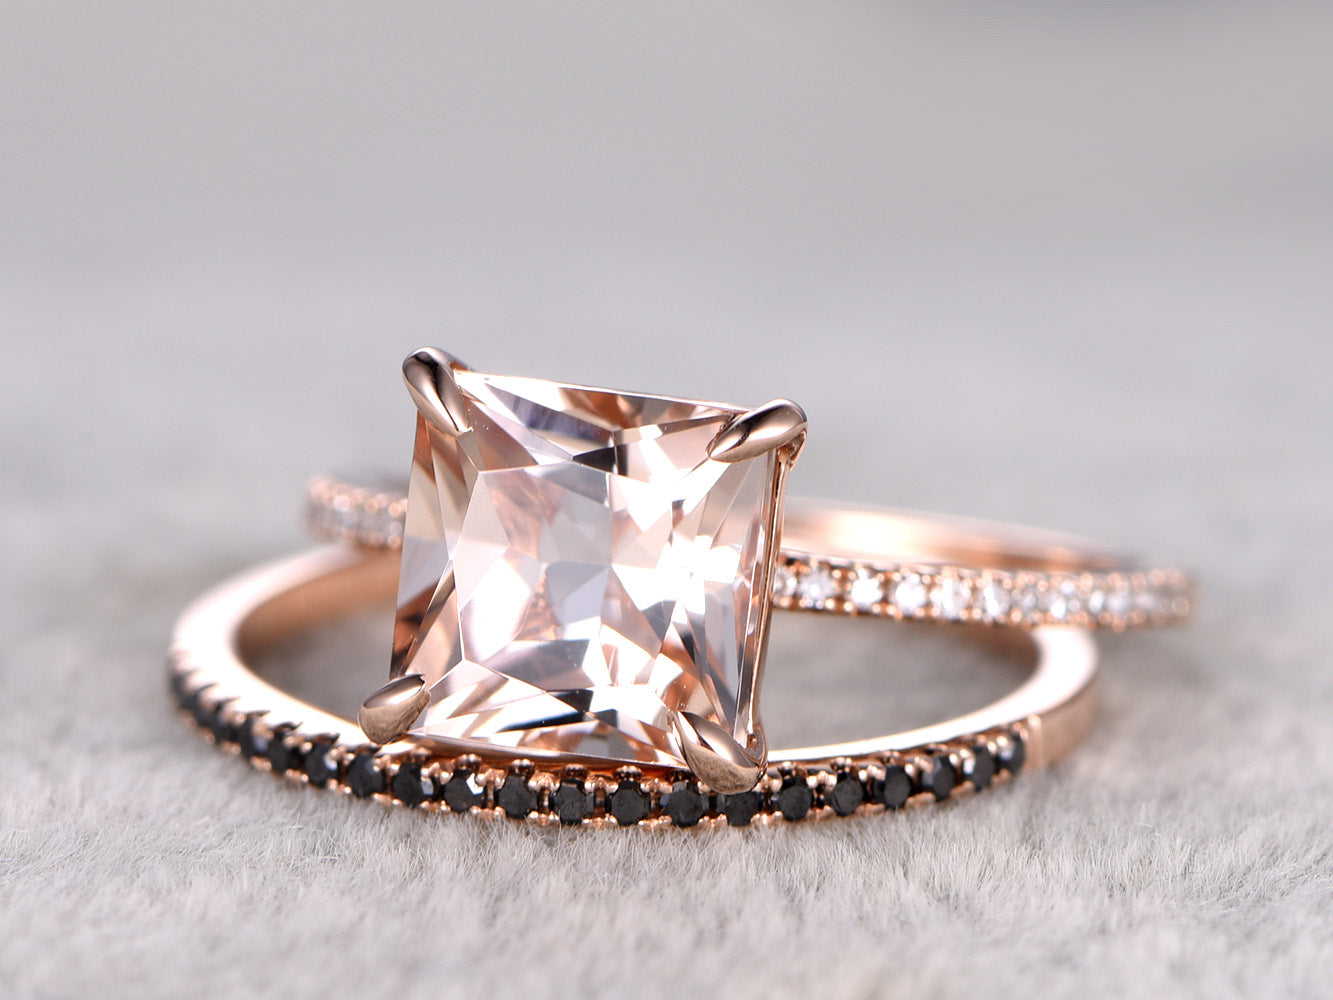 Morganite ring set princess cut morganite engagement ring half eternity black diamond matching band solid 14k rose gold